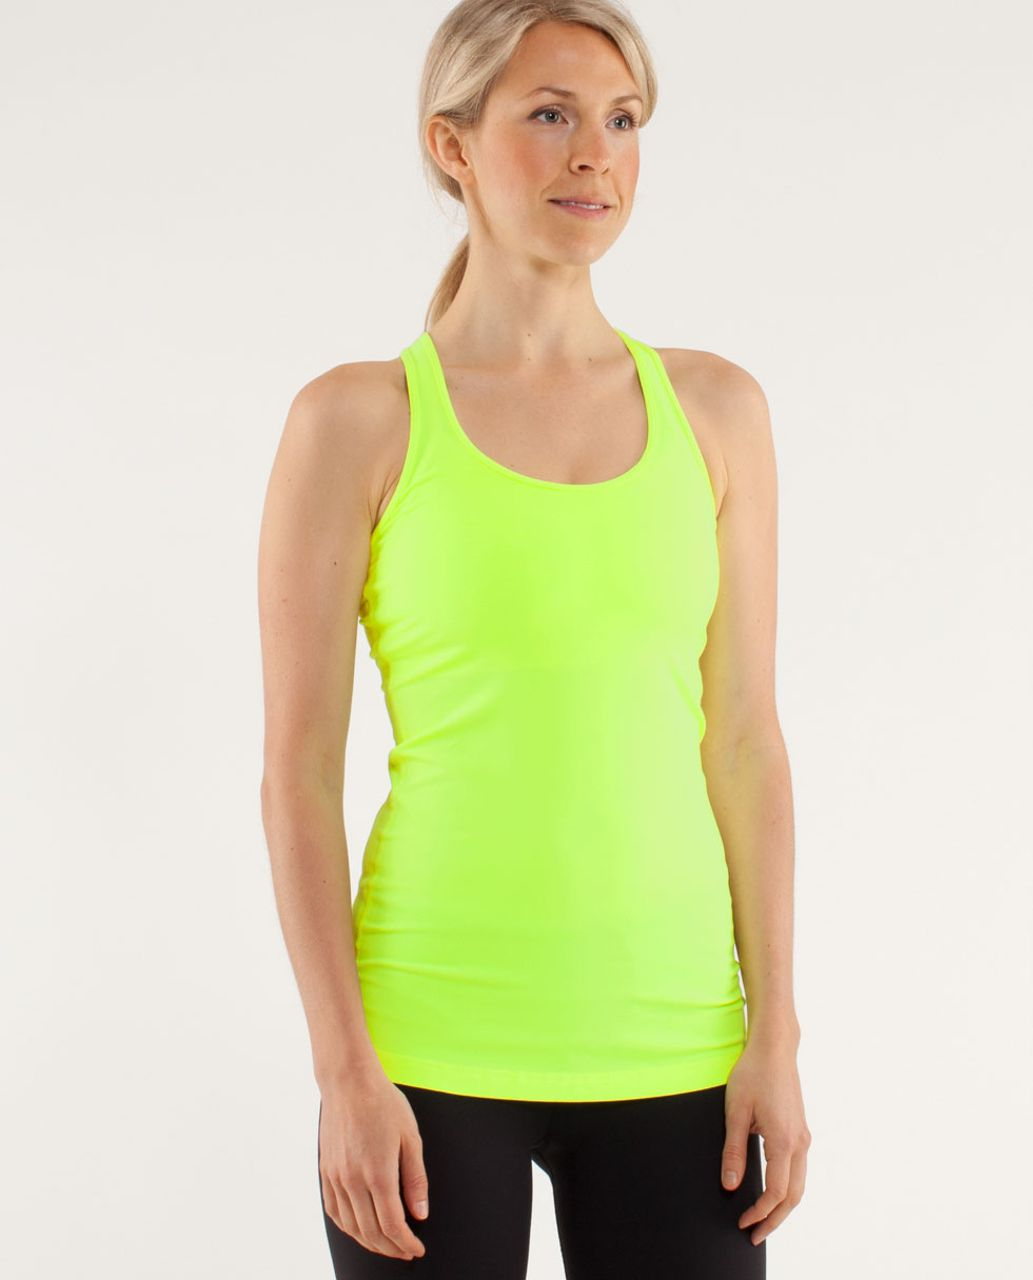 Lululemon Cool Racerback (First Release) - Ray